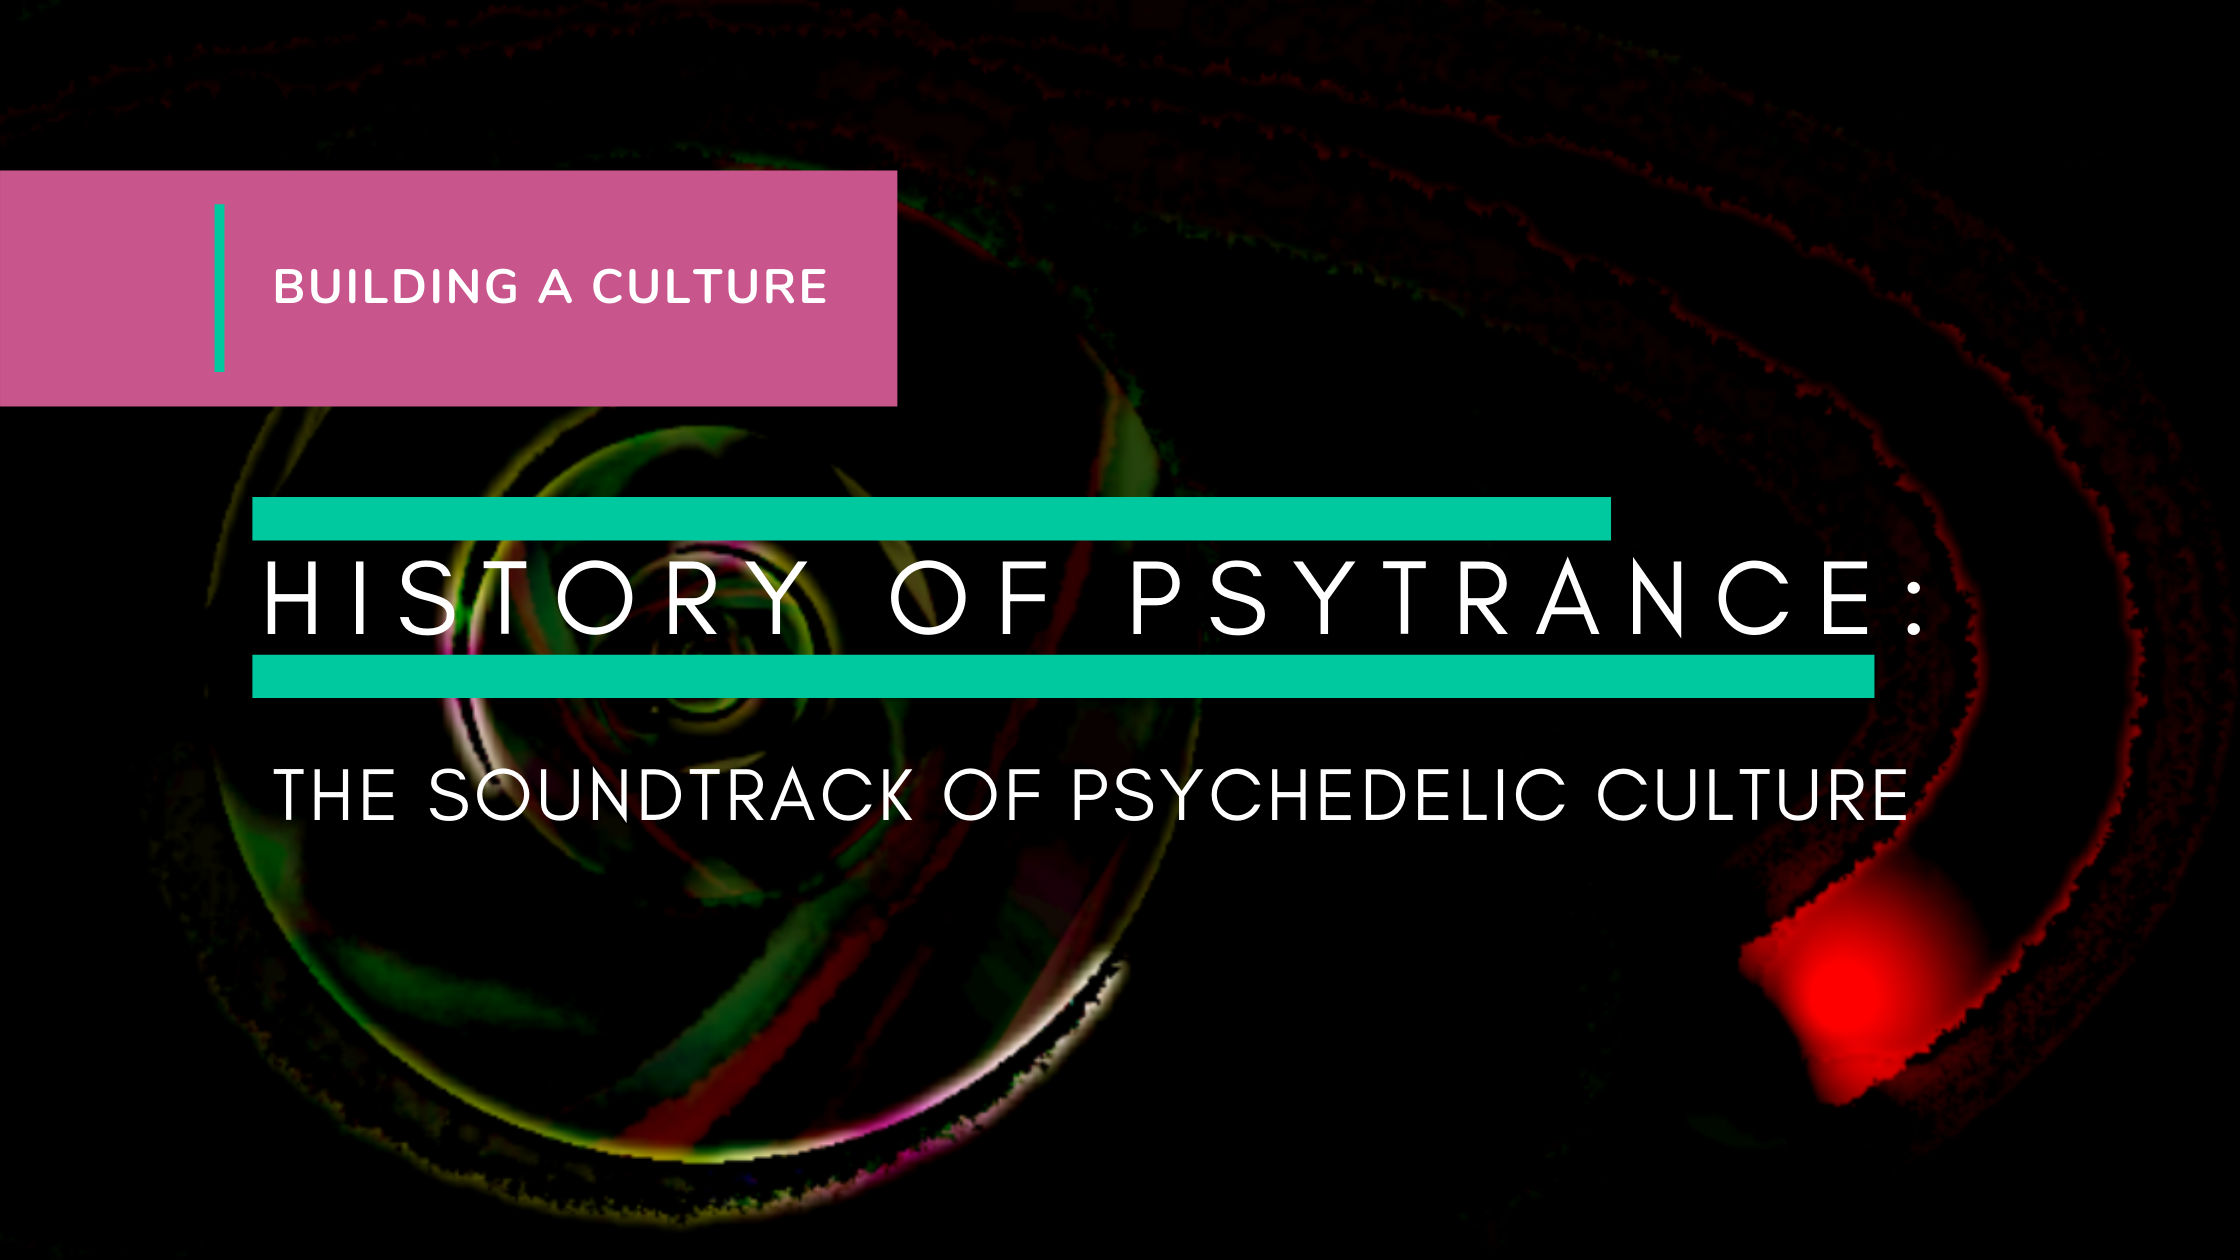 A Brief-ish History of Psytrance, the Soundtrack of Psychedelic Culture